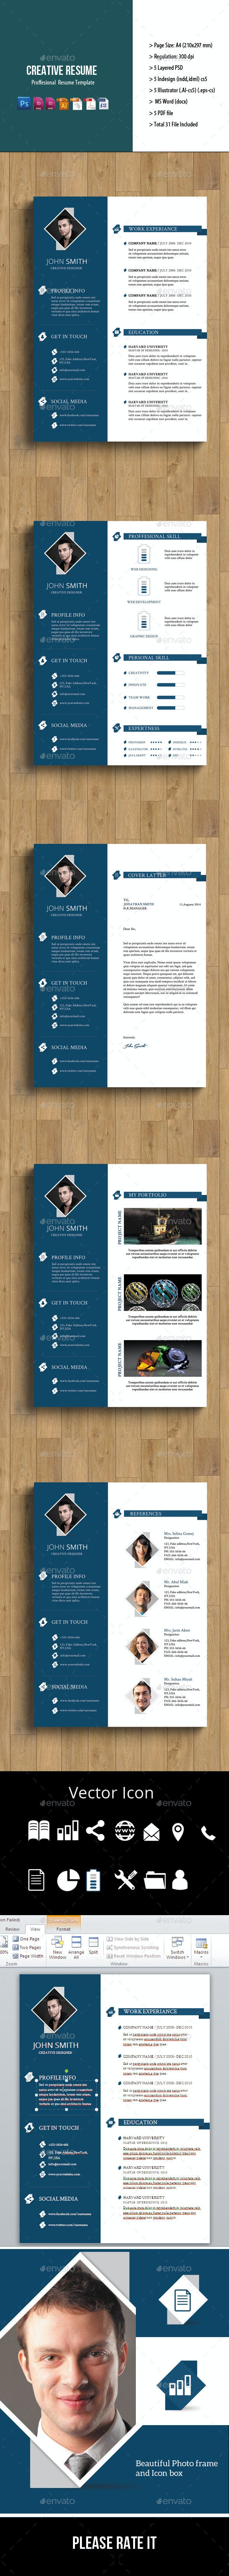 5 Page Creative Resume - Resumes Stationery